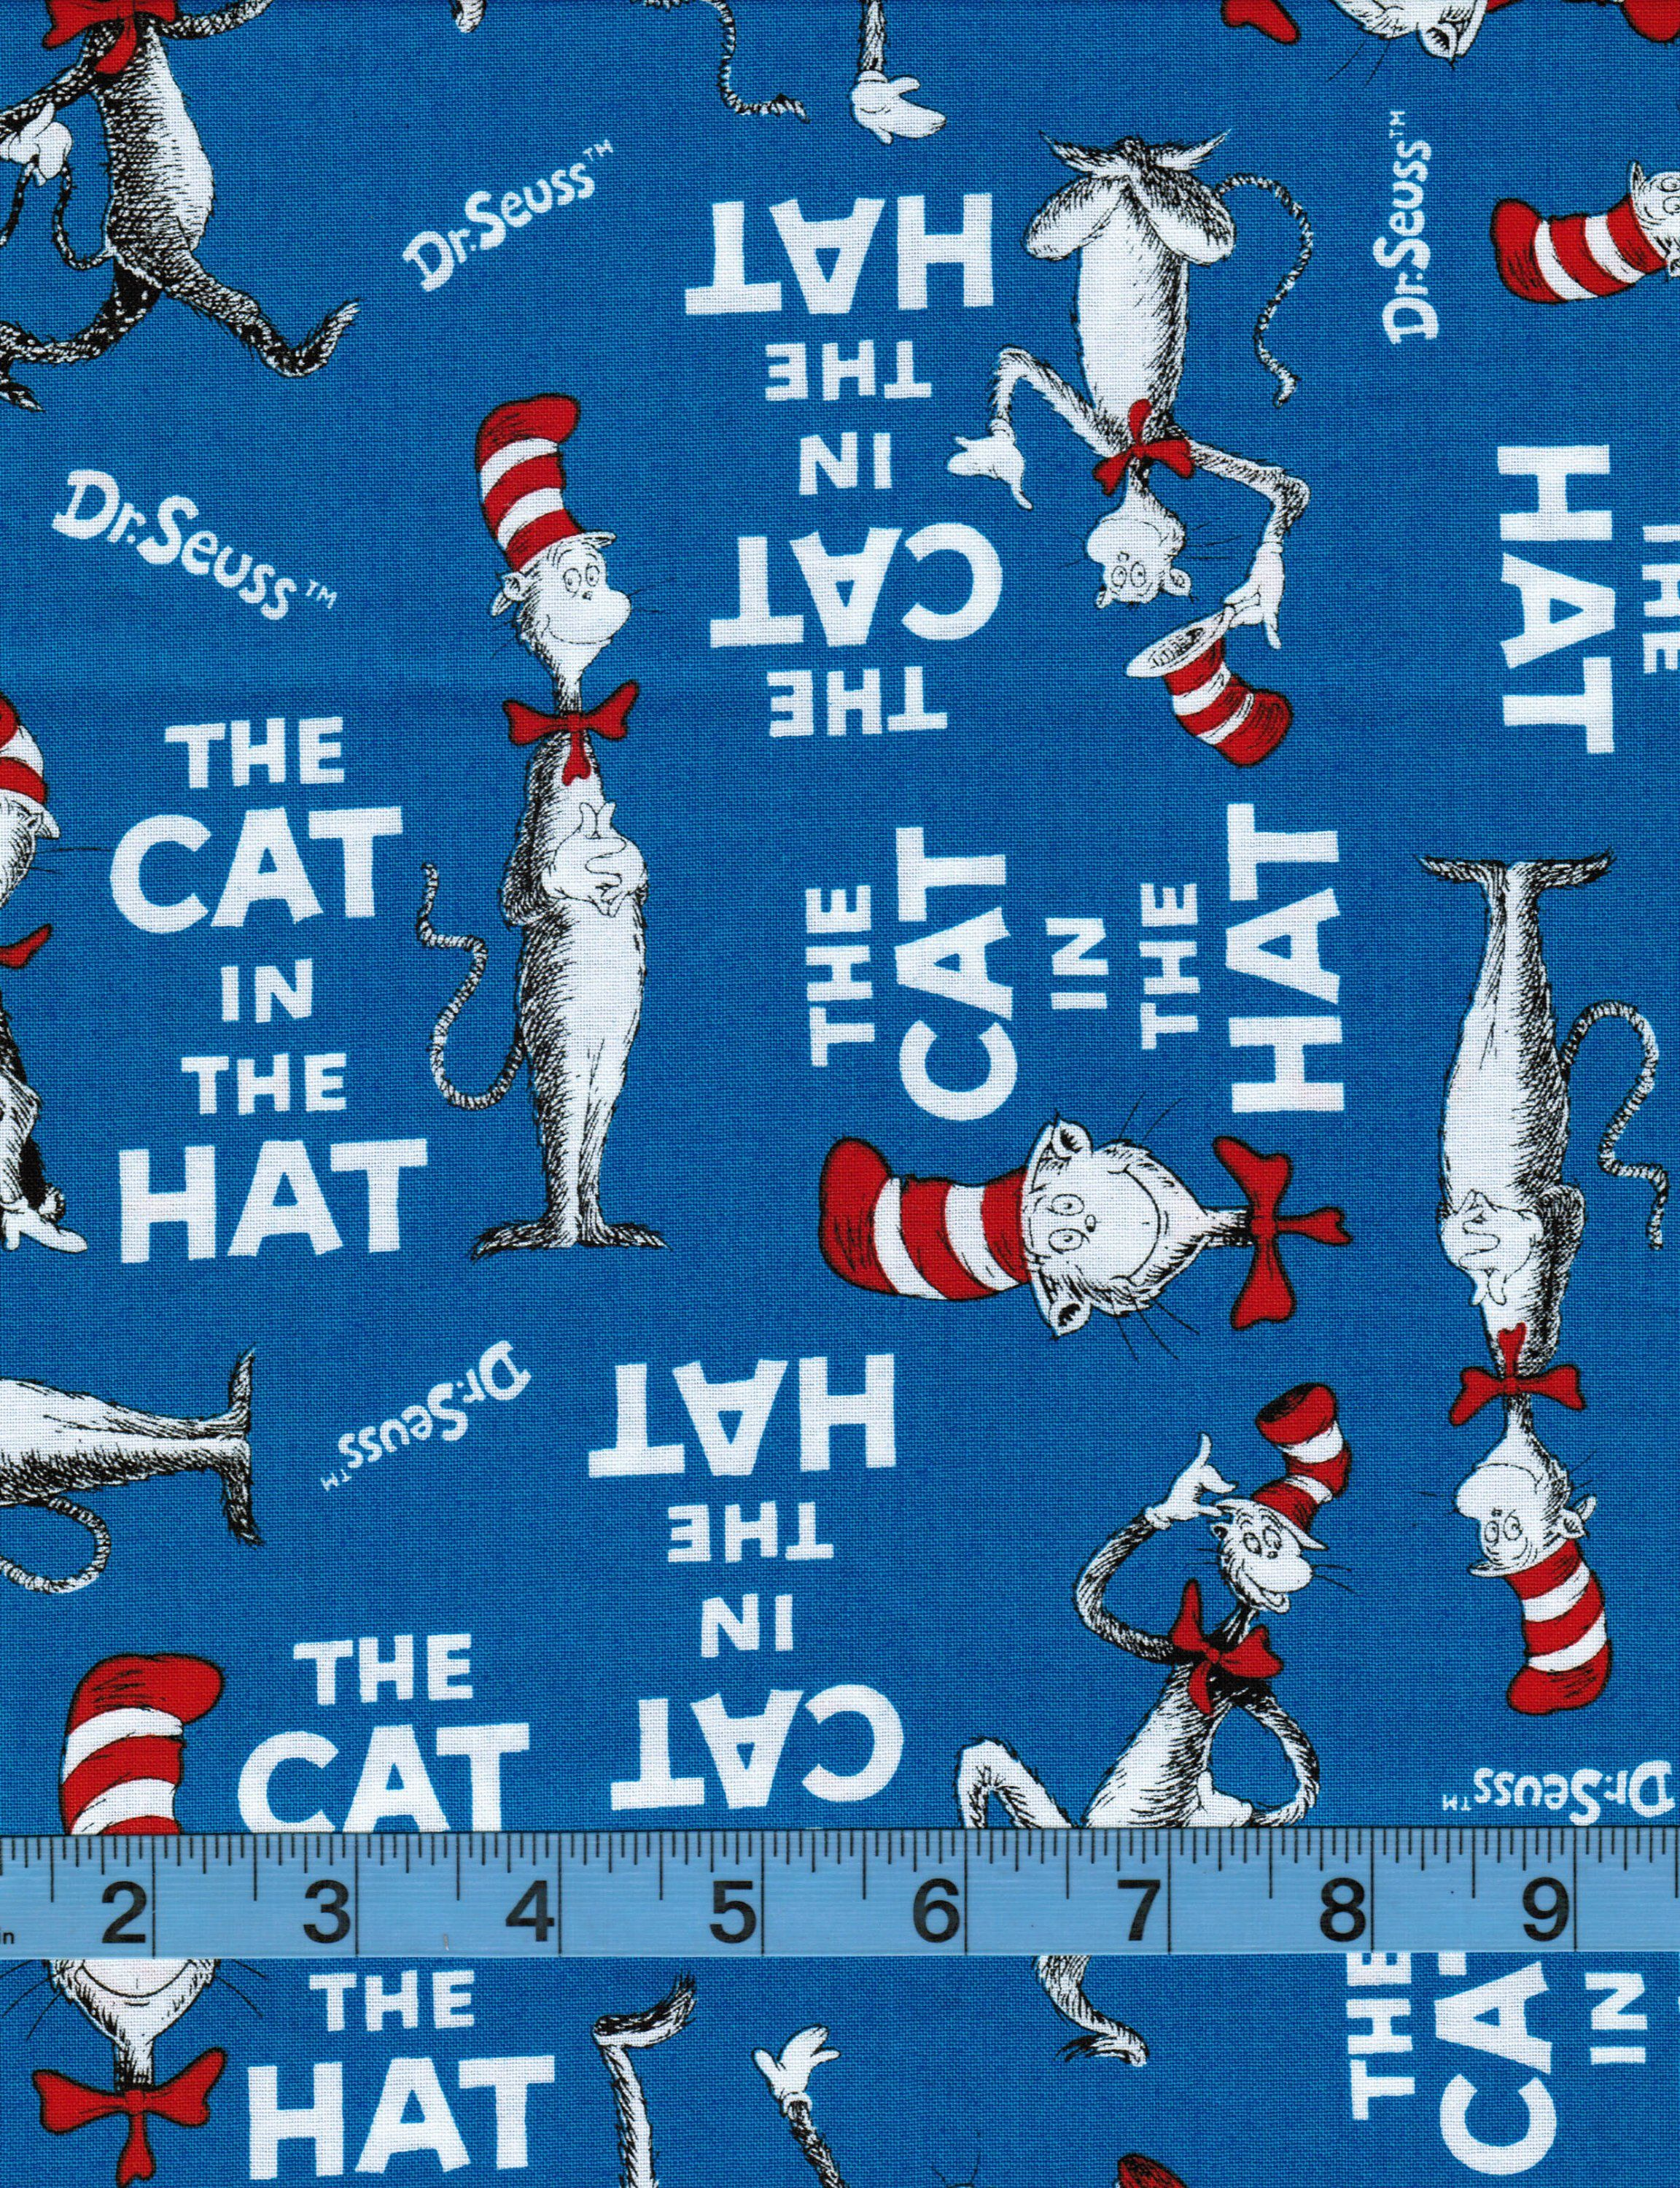 The Cat in the Hat, 100 Cotton Fabric by the Yard